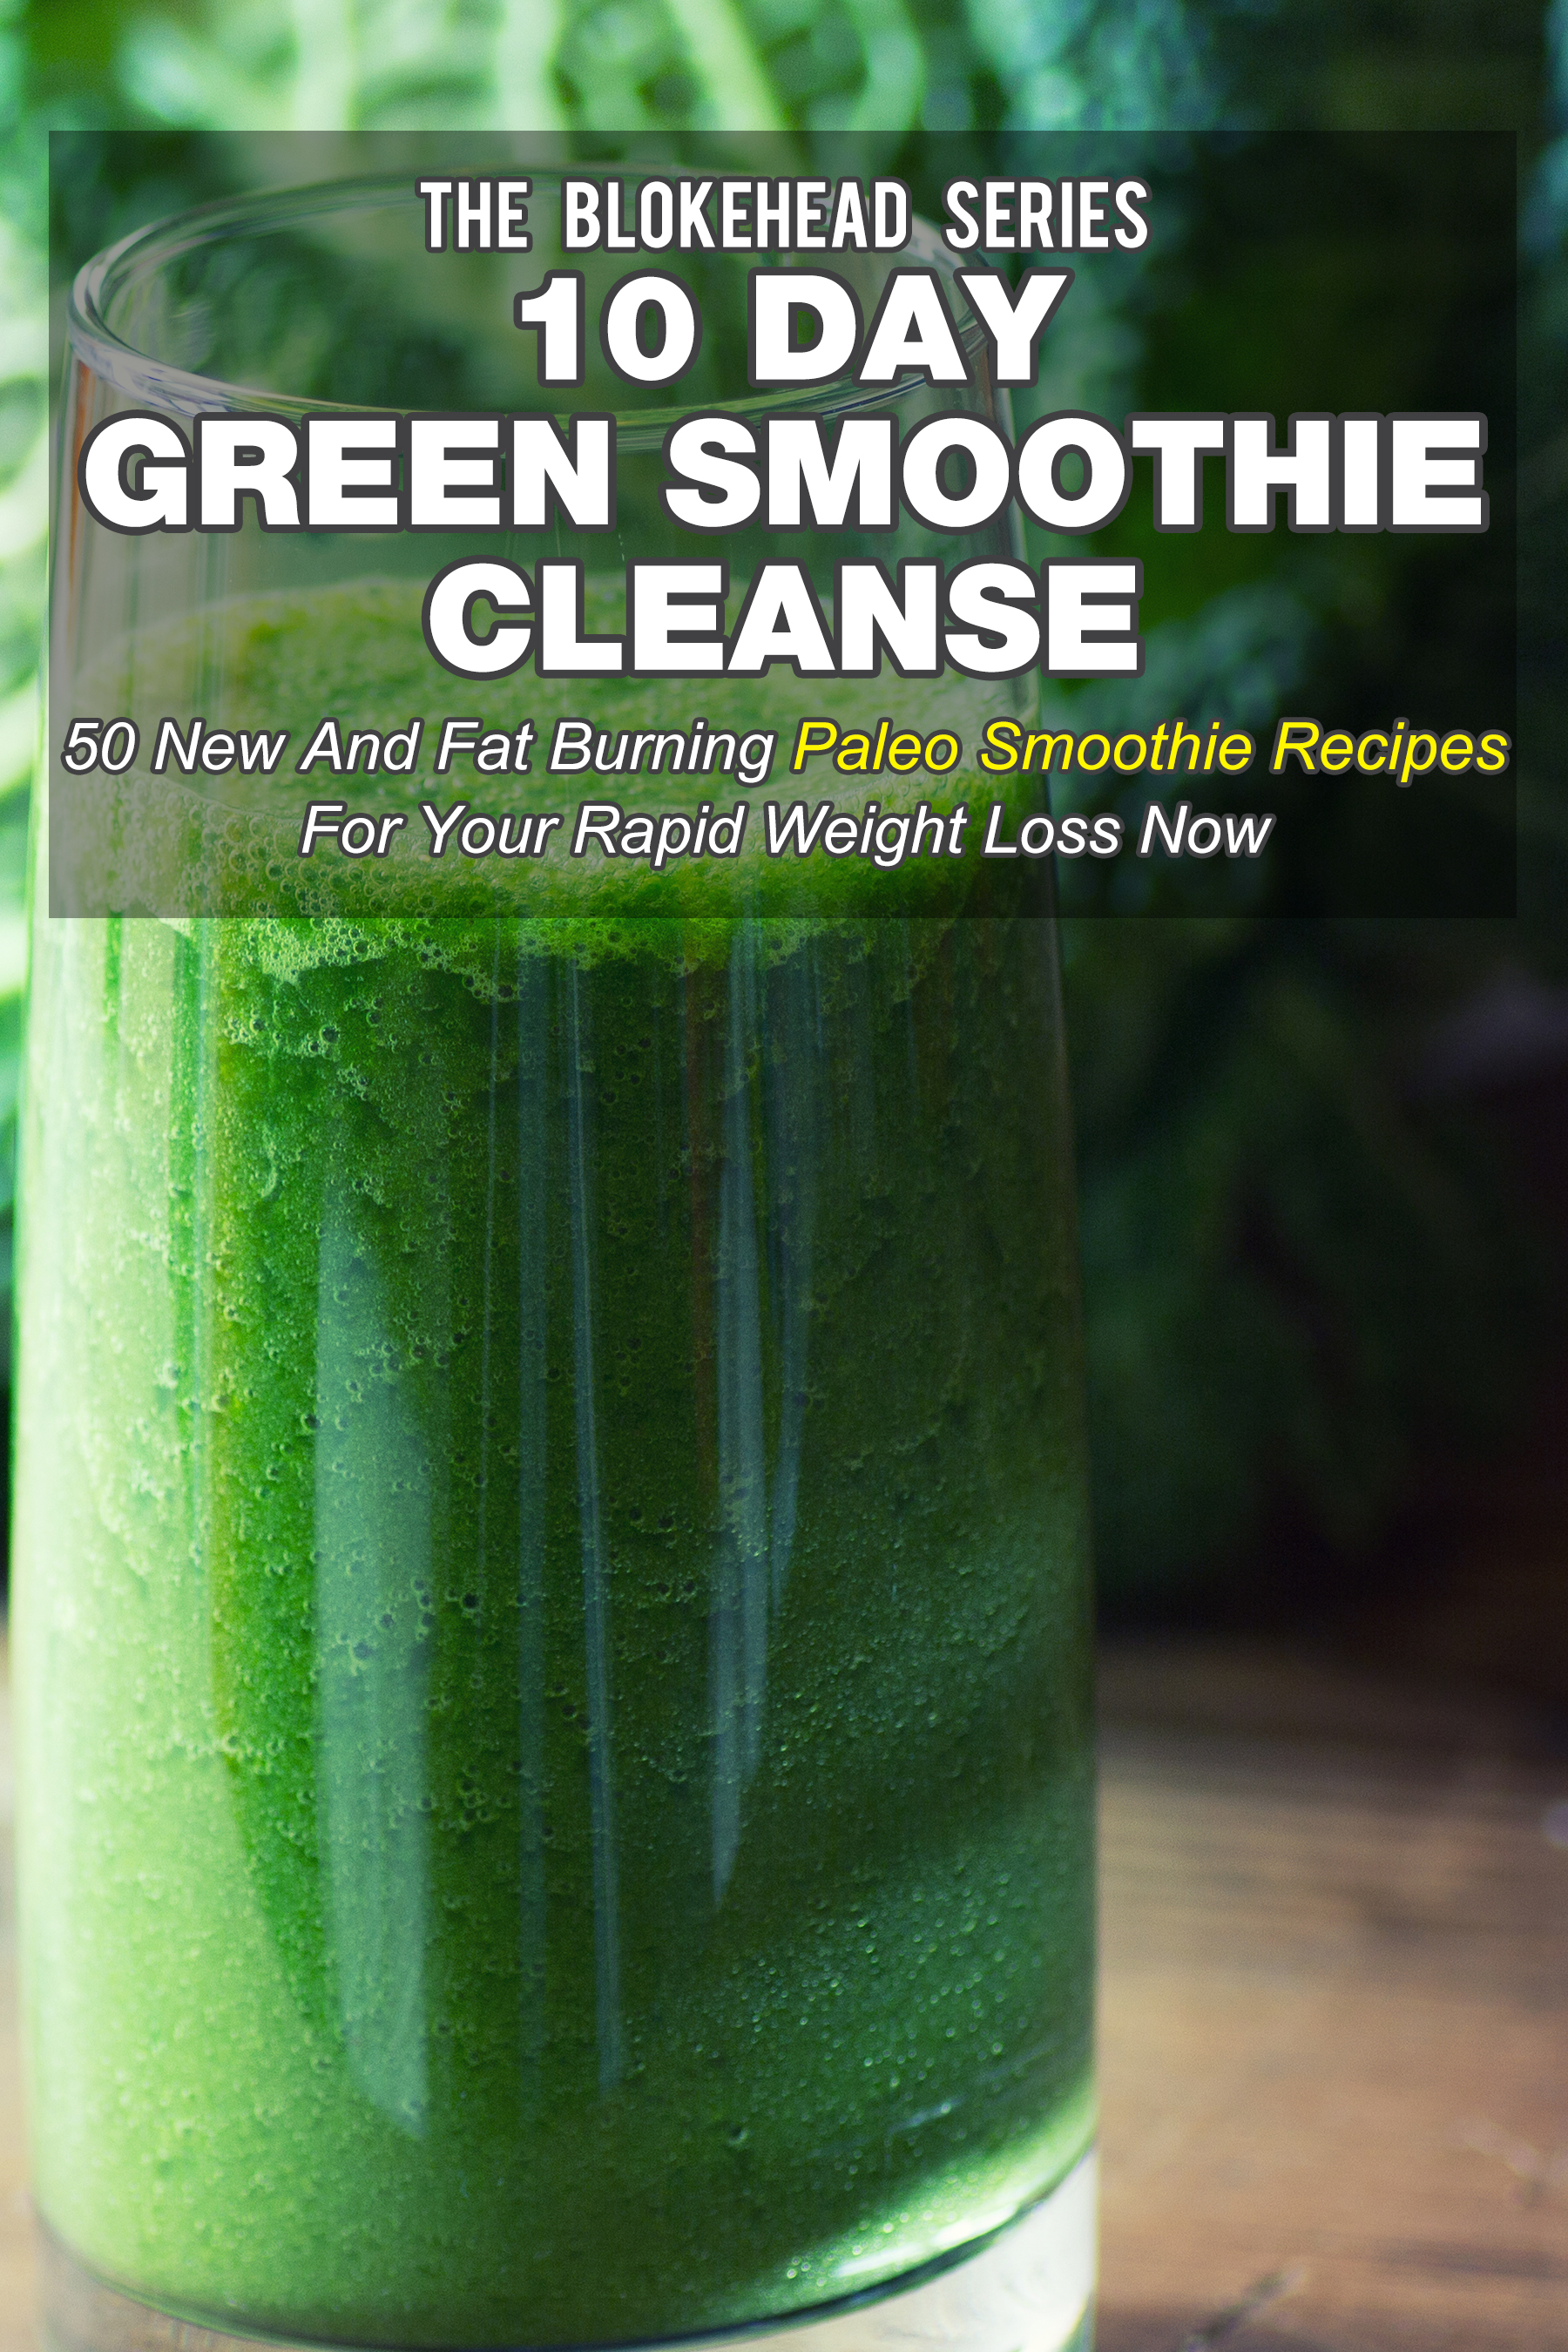 10 day green smoothie cleanse: 50 fat burning paleo smoothie recipes for rapid weight loss now